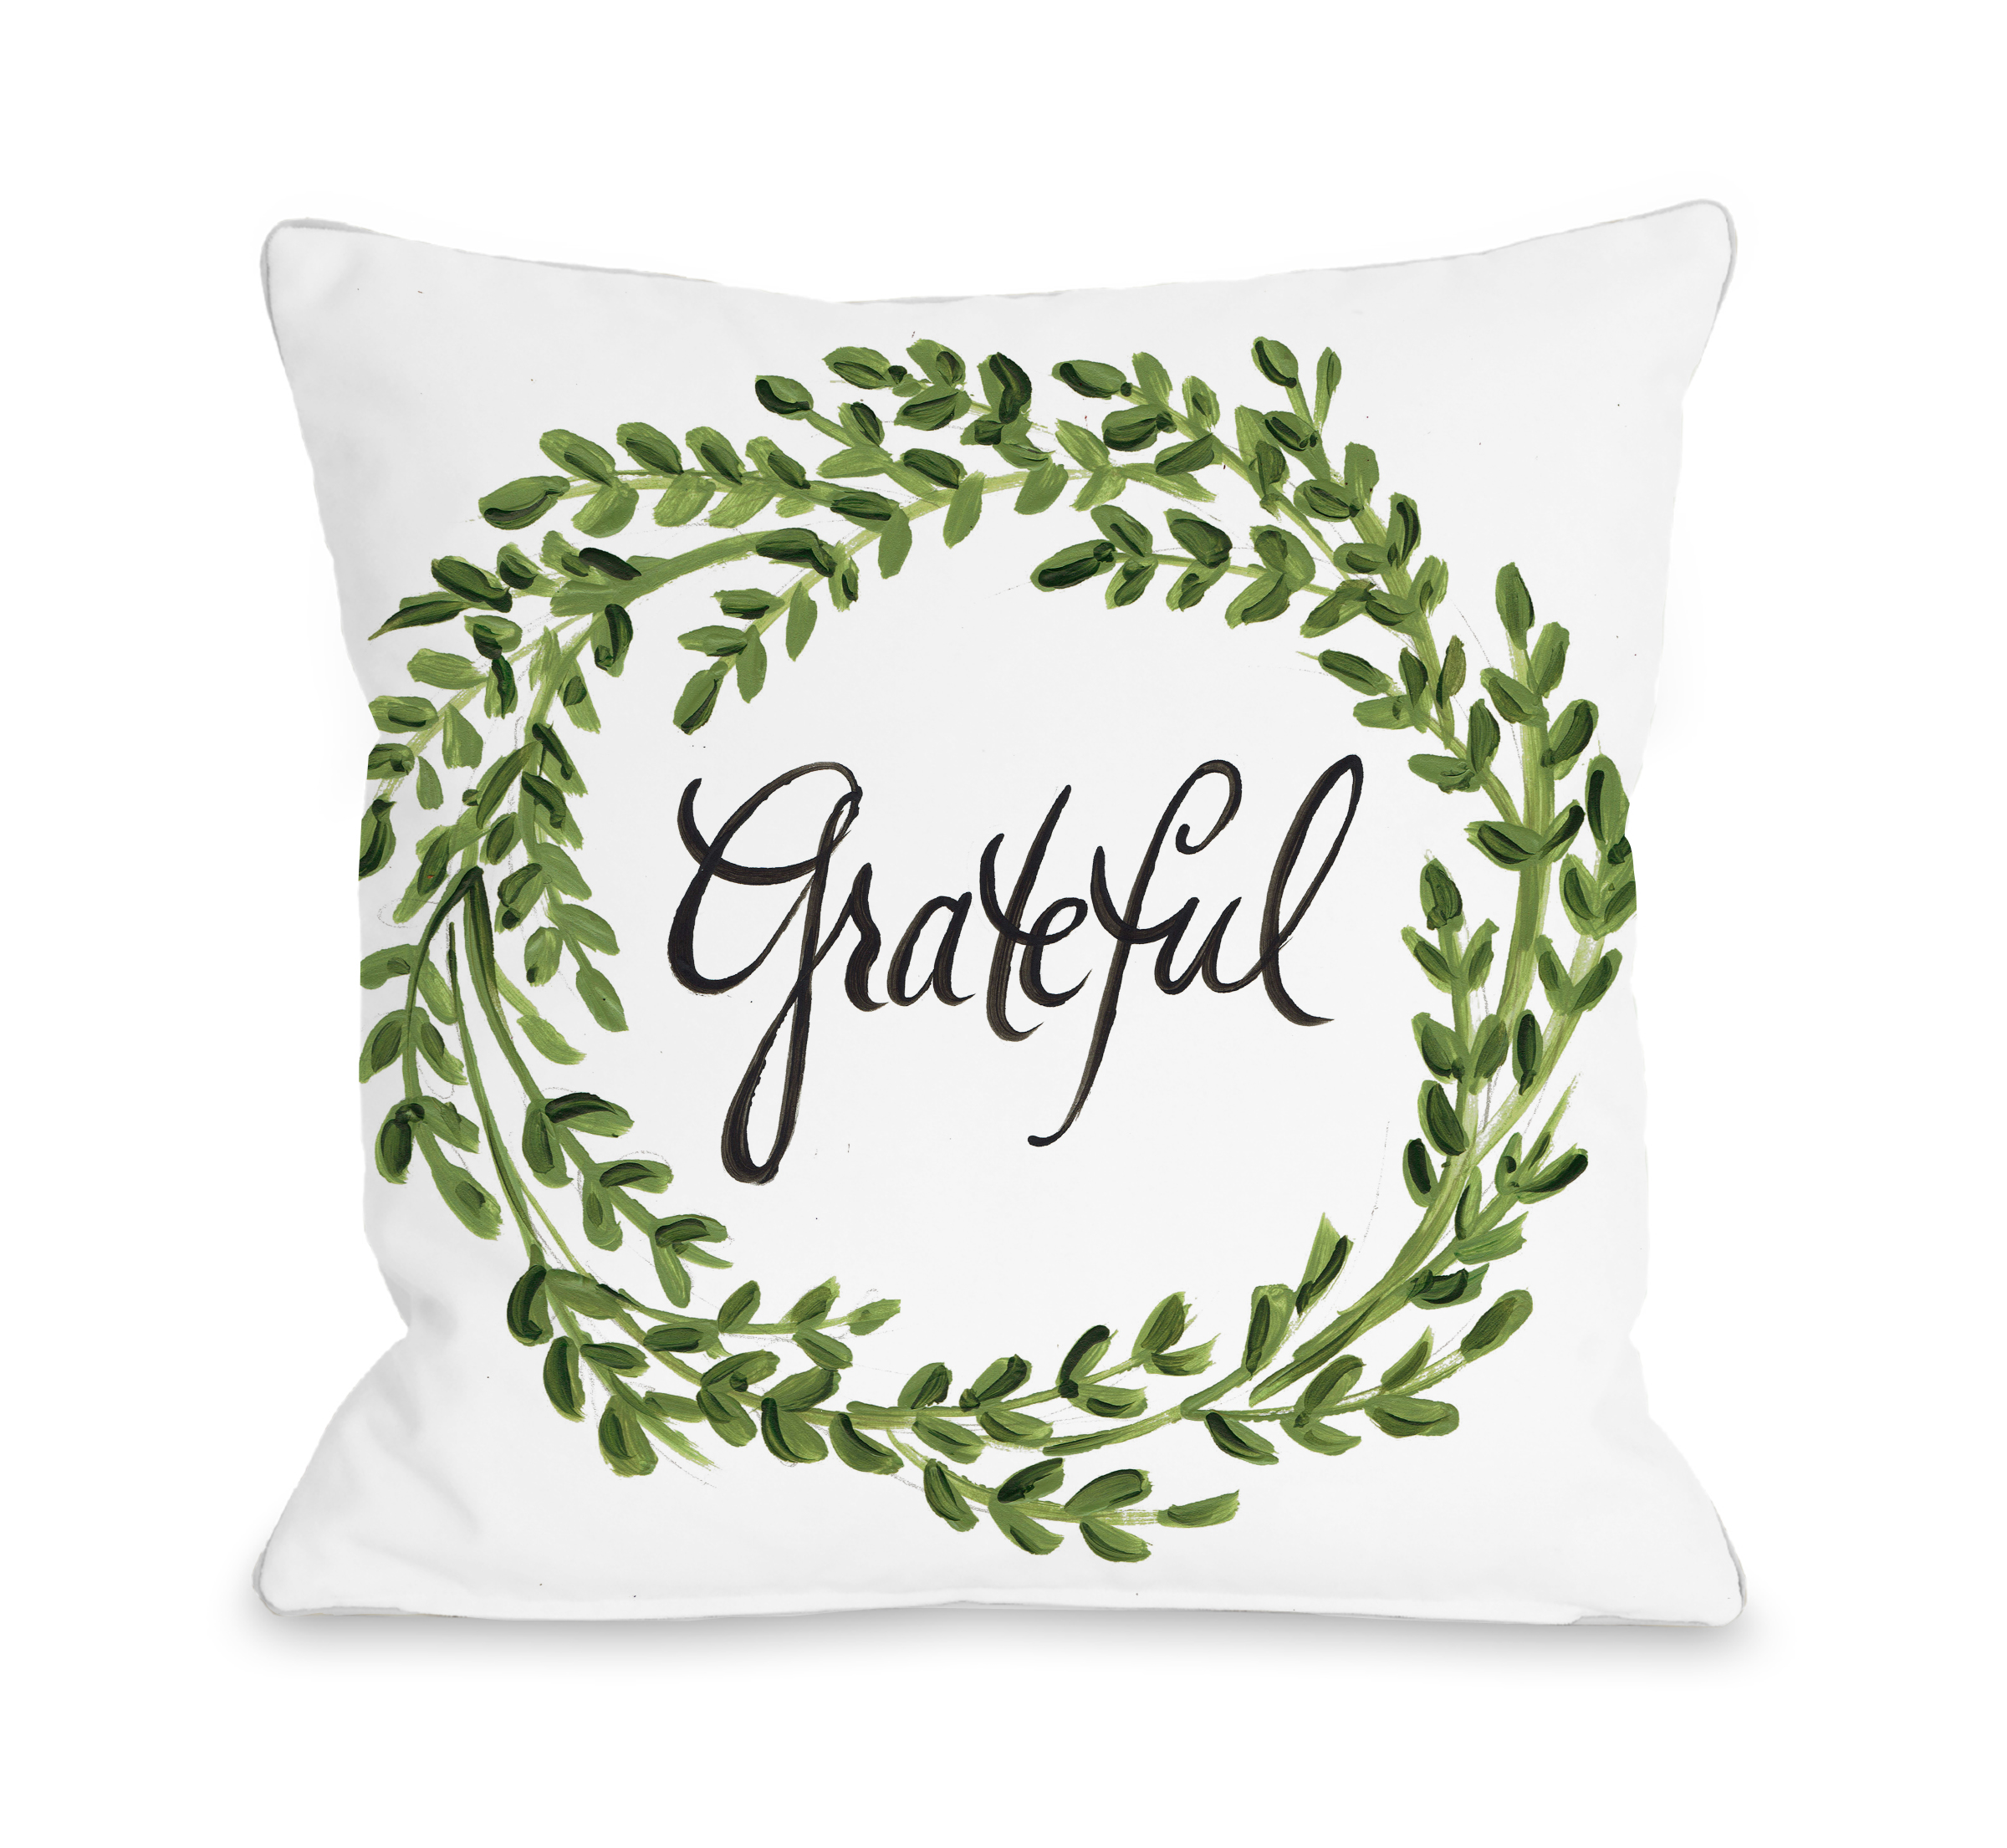 Grateful Leaf Wreath - Green 16x16 Pillow by Timree